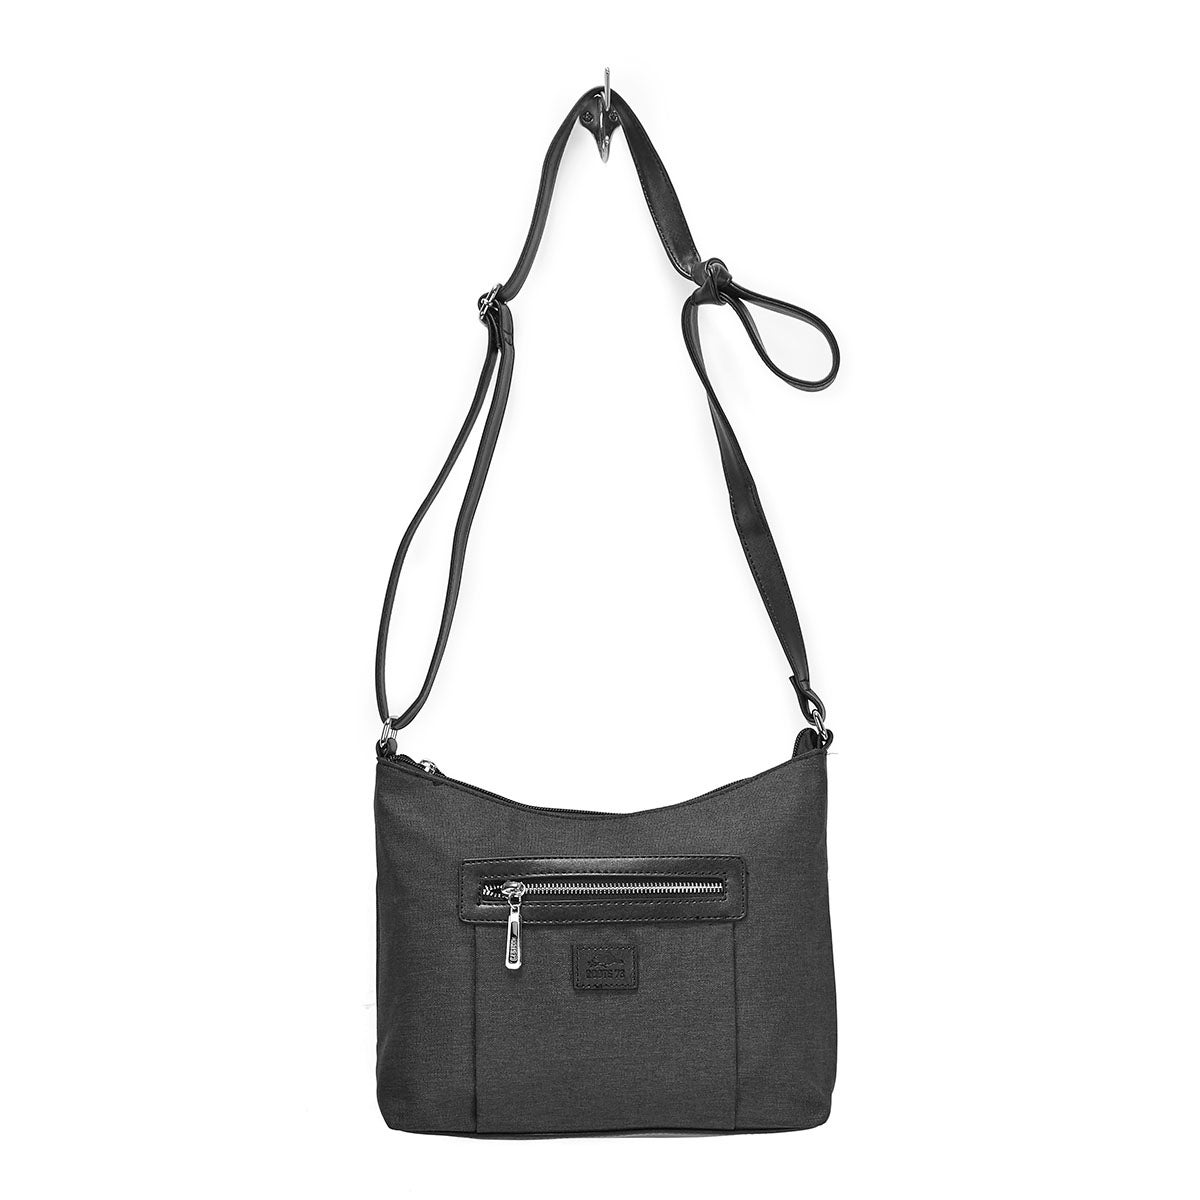 LdsRoots73 black top zip hobo bag